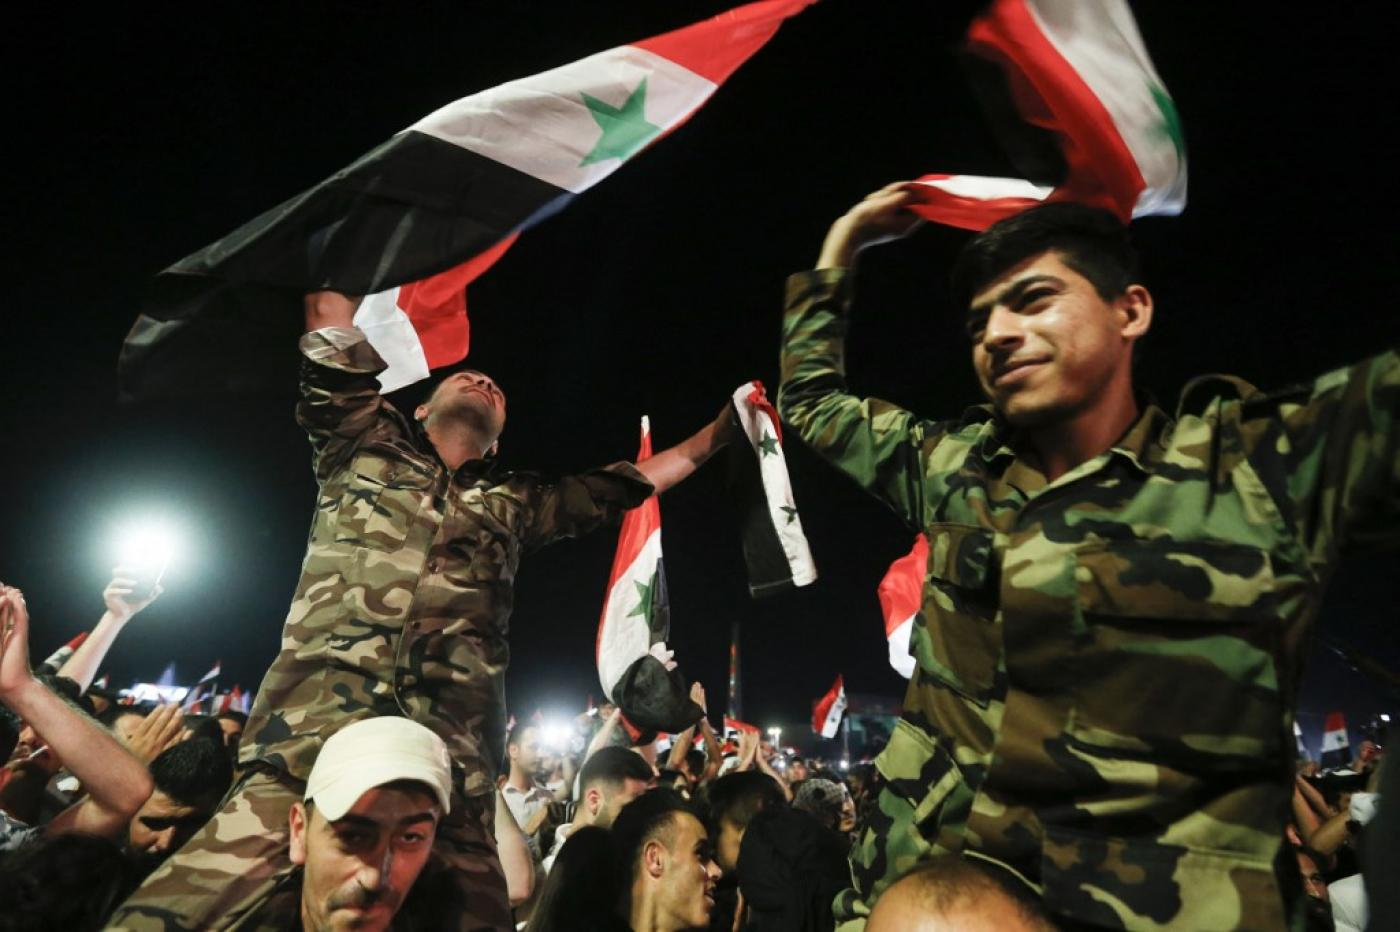 Syria: Can anyone seriously threaten Assad's grip on power?